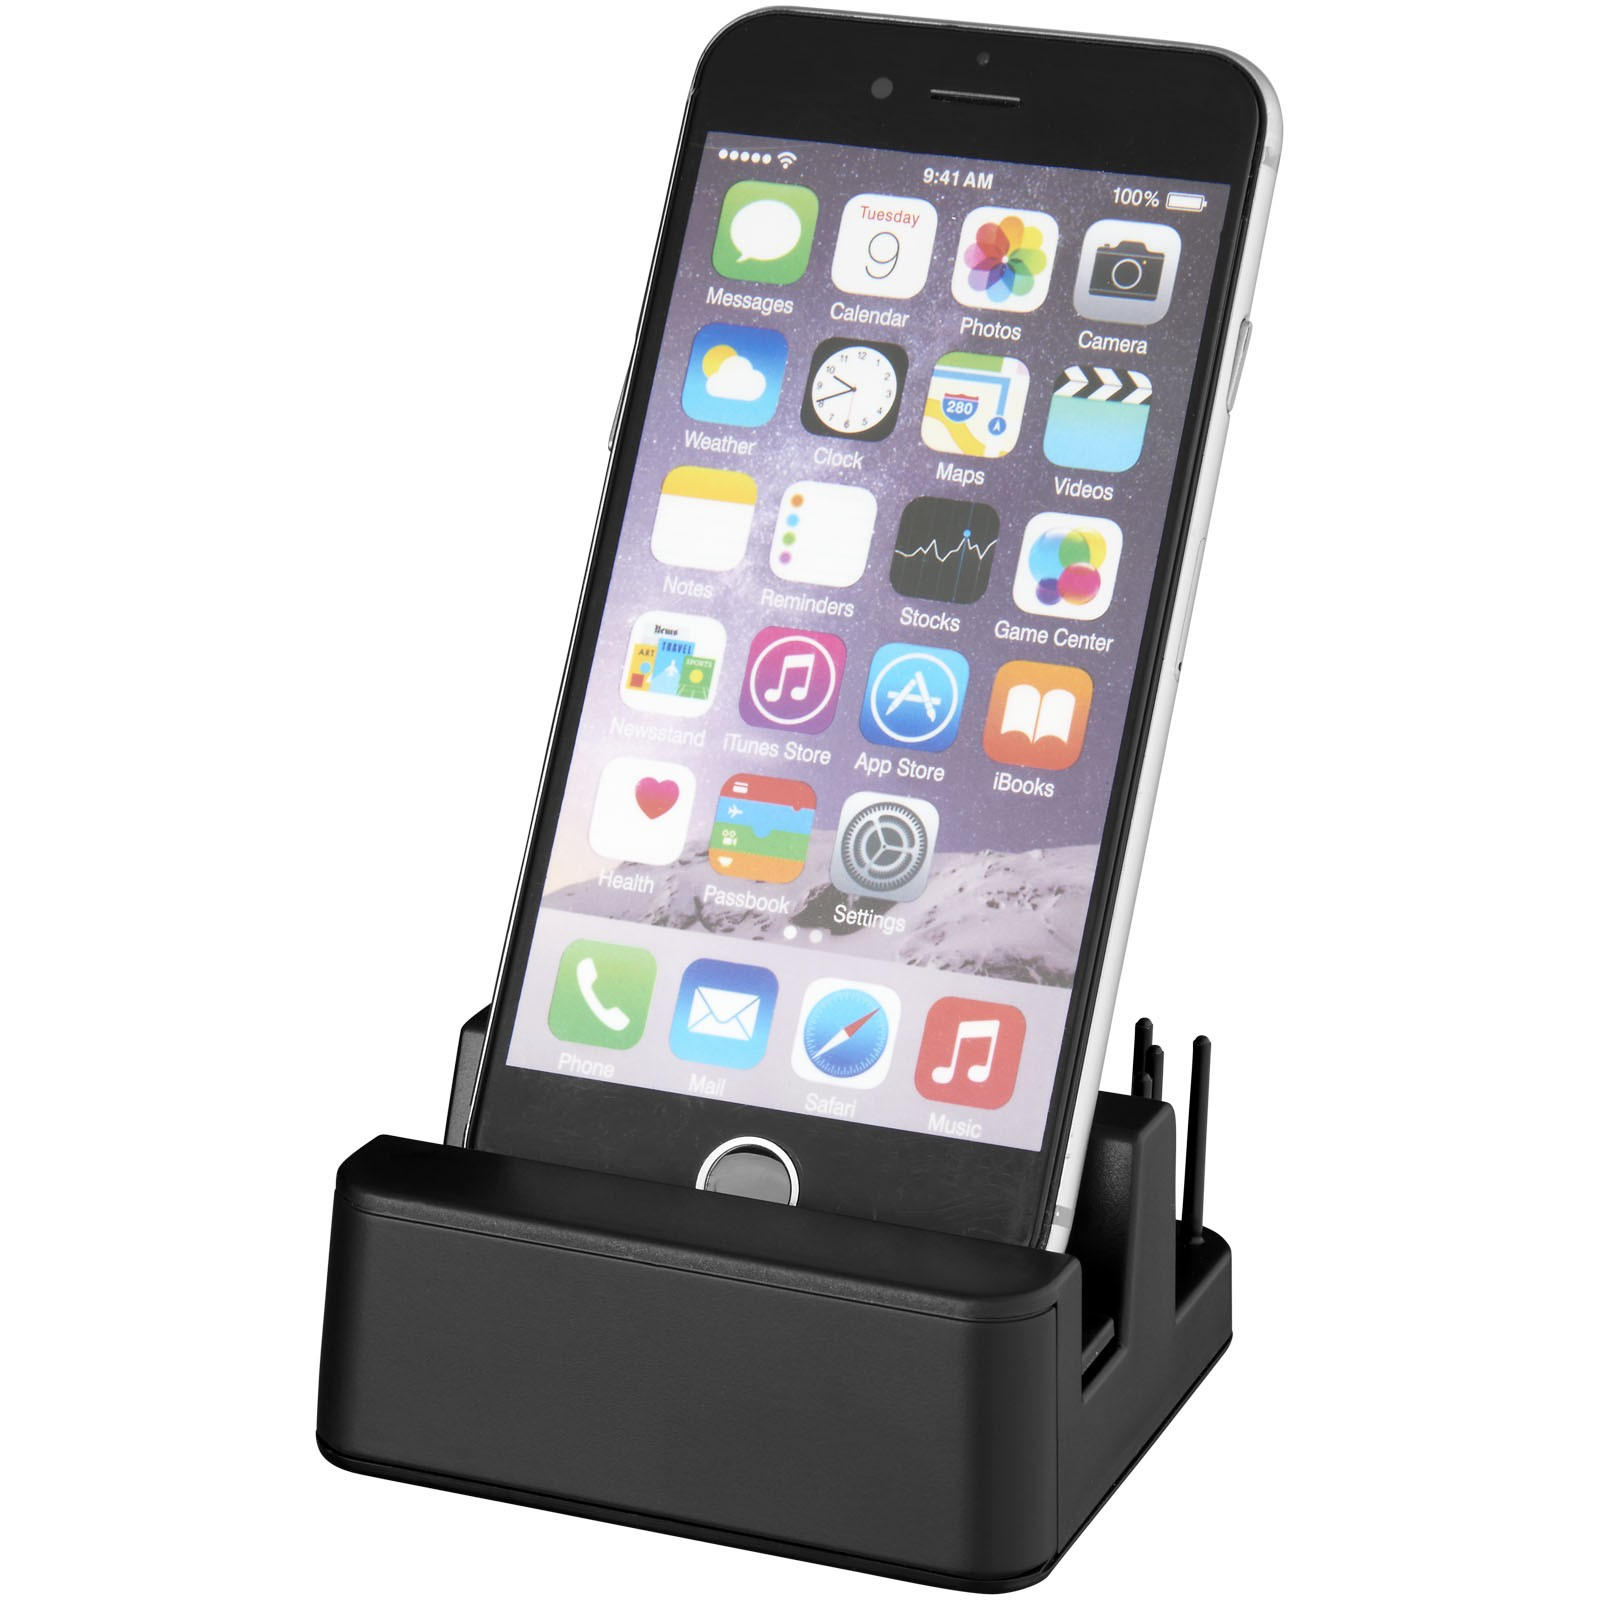 Glint light-up desk stand - Solid black